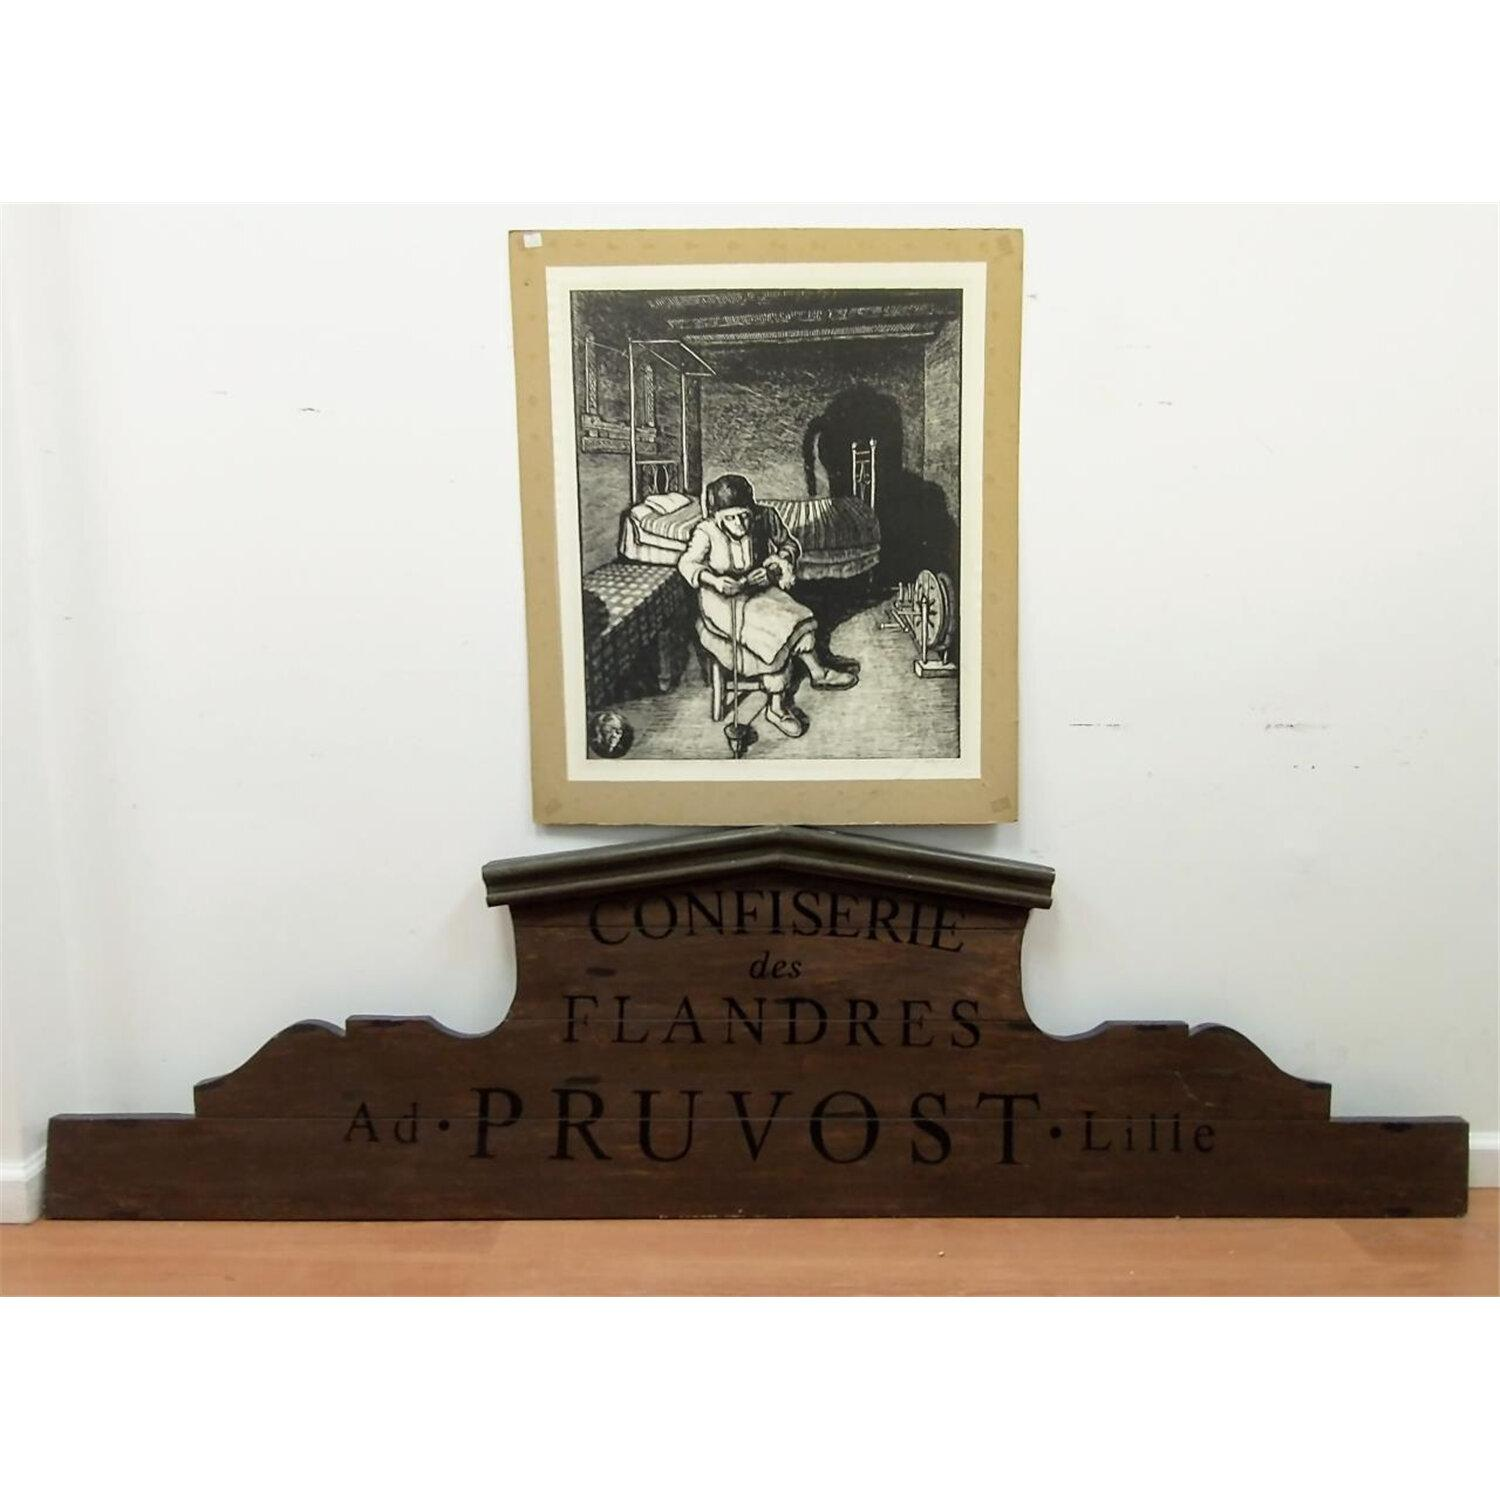 French Large Pastry Shop Sign & a Vintage Etching